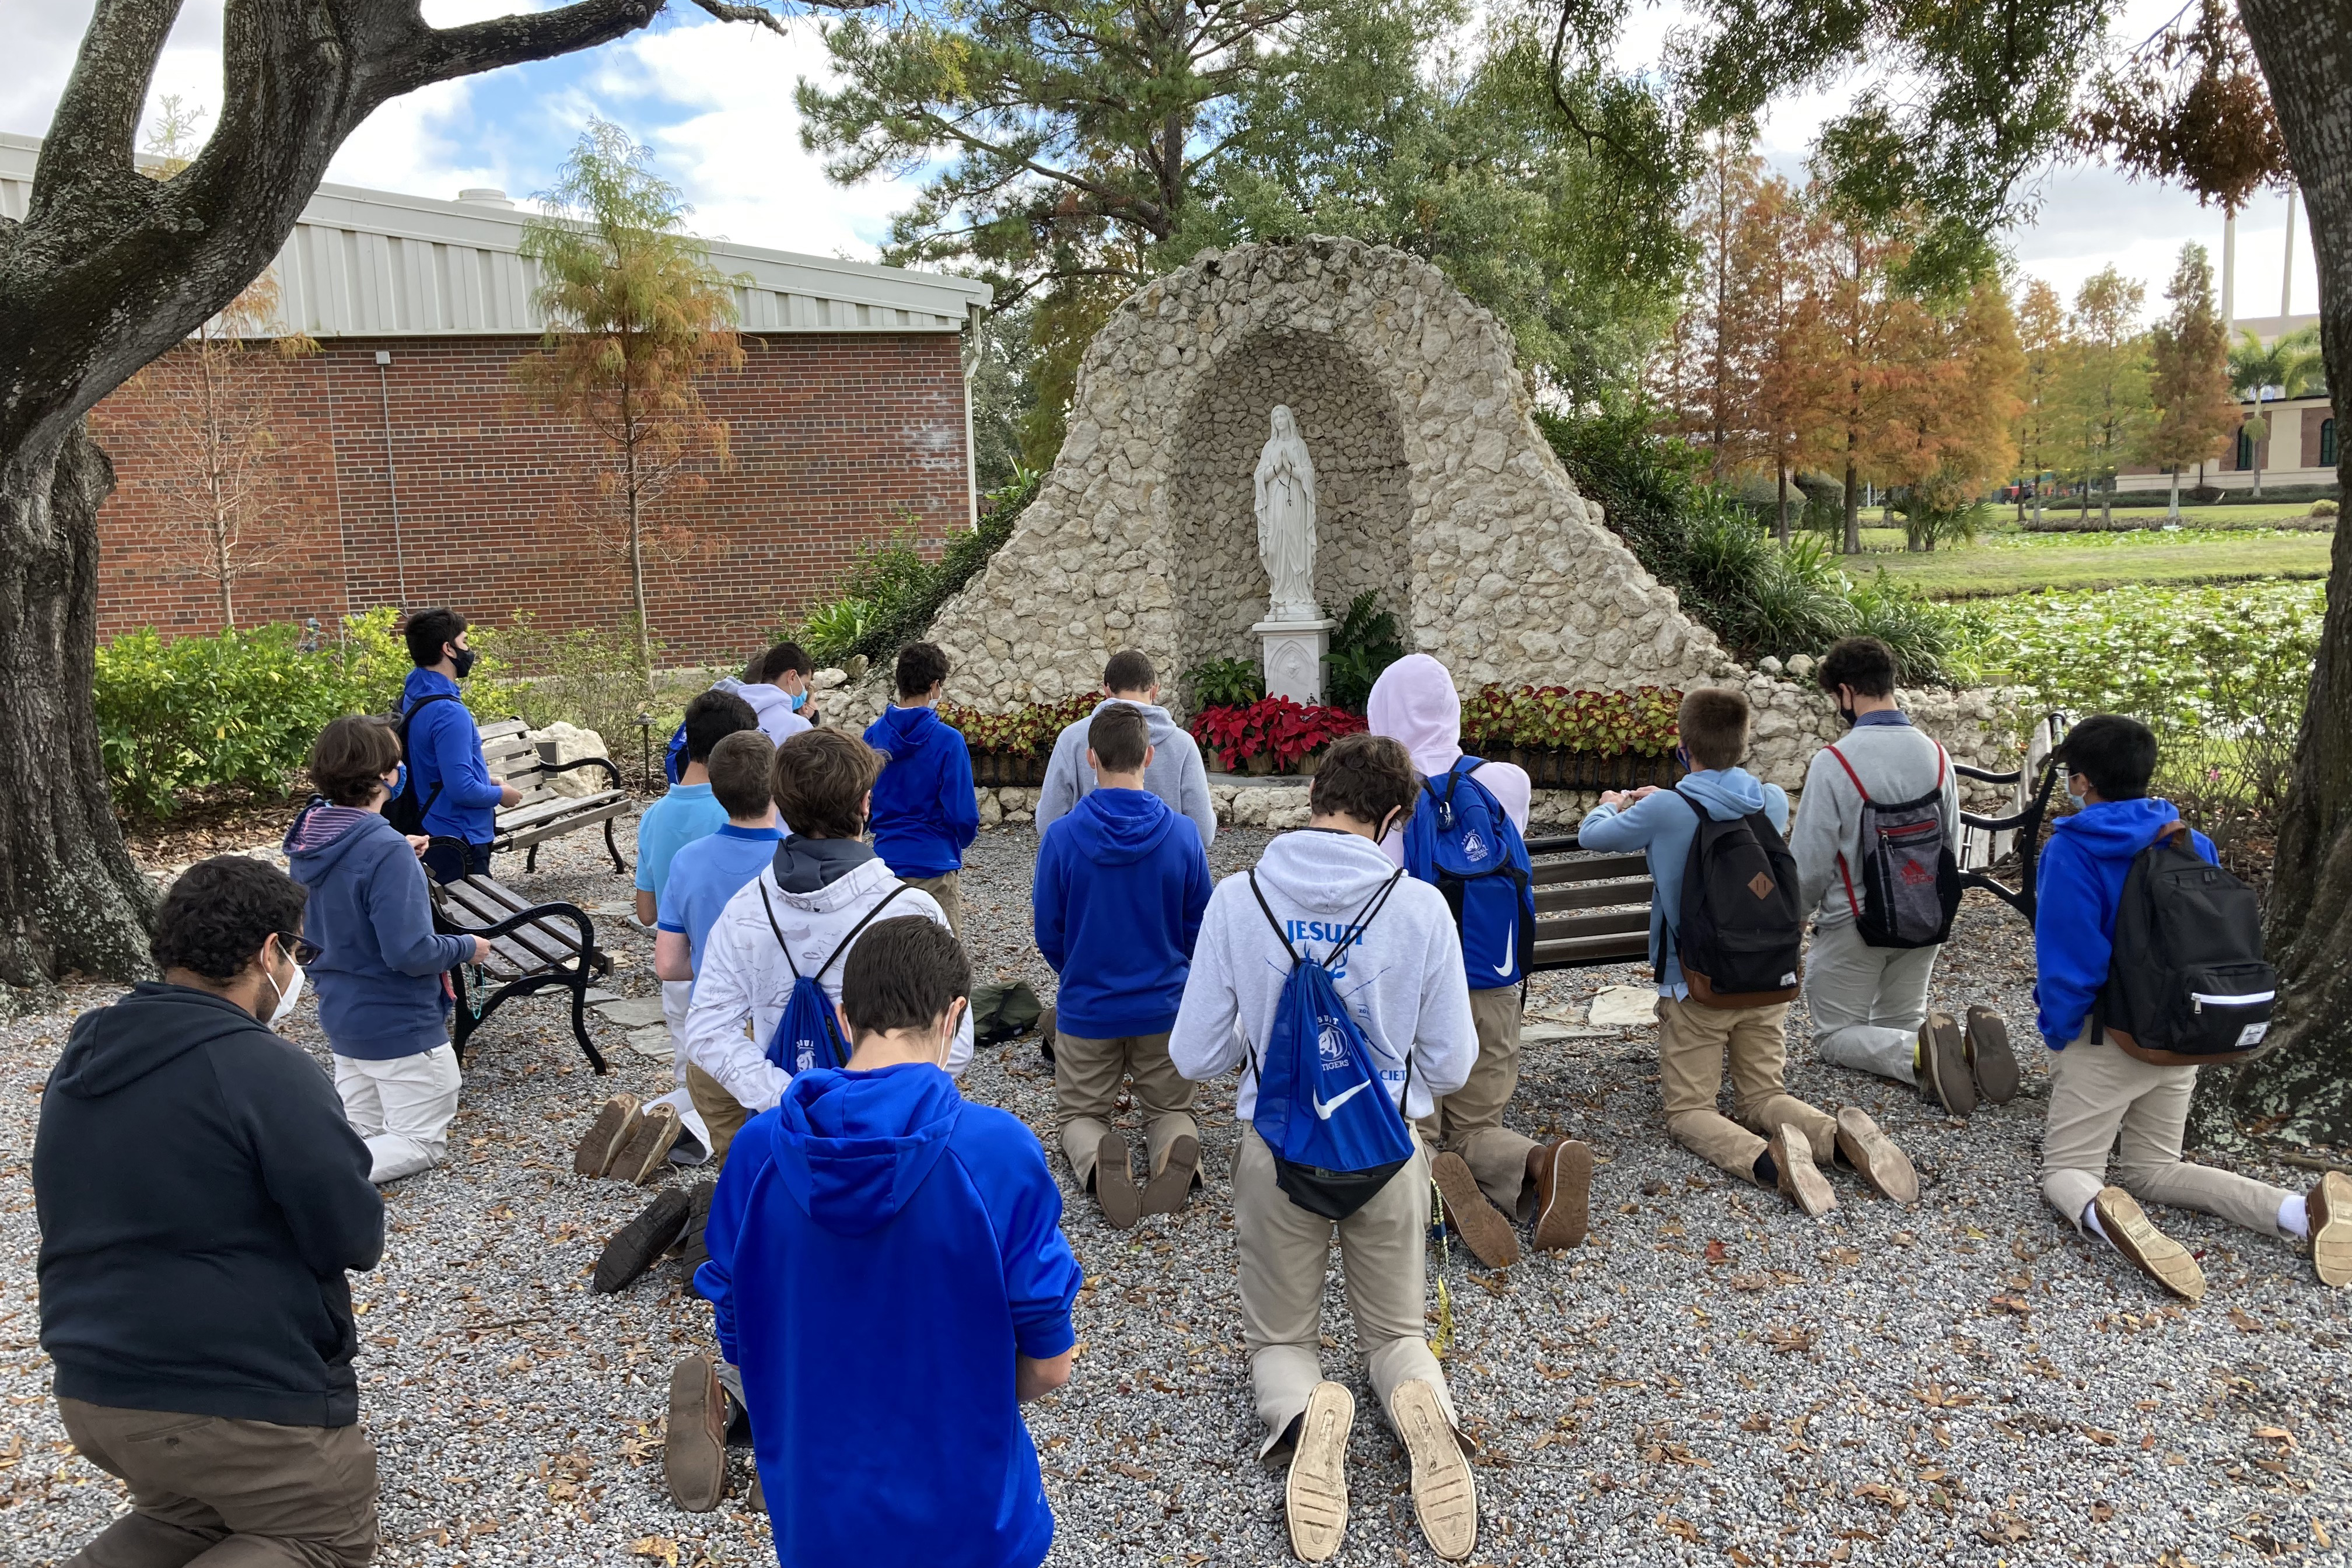 A group of students from Jesuit High School, an all-boys school in Tampa, Florida, praying in front of a statue of Our Lady. Jimmy Mitchell